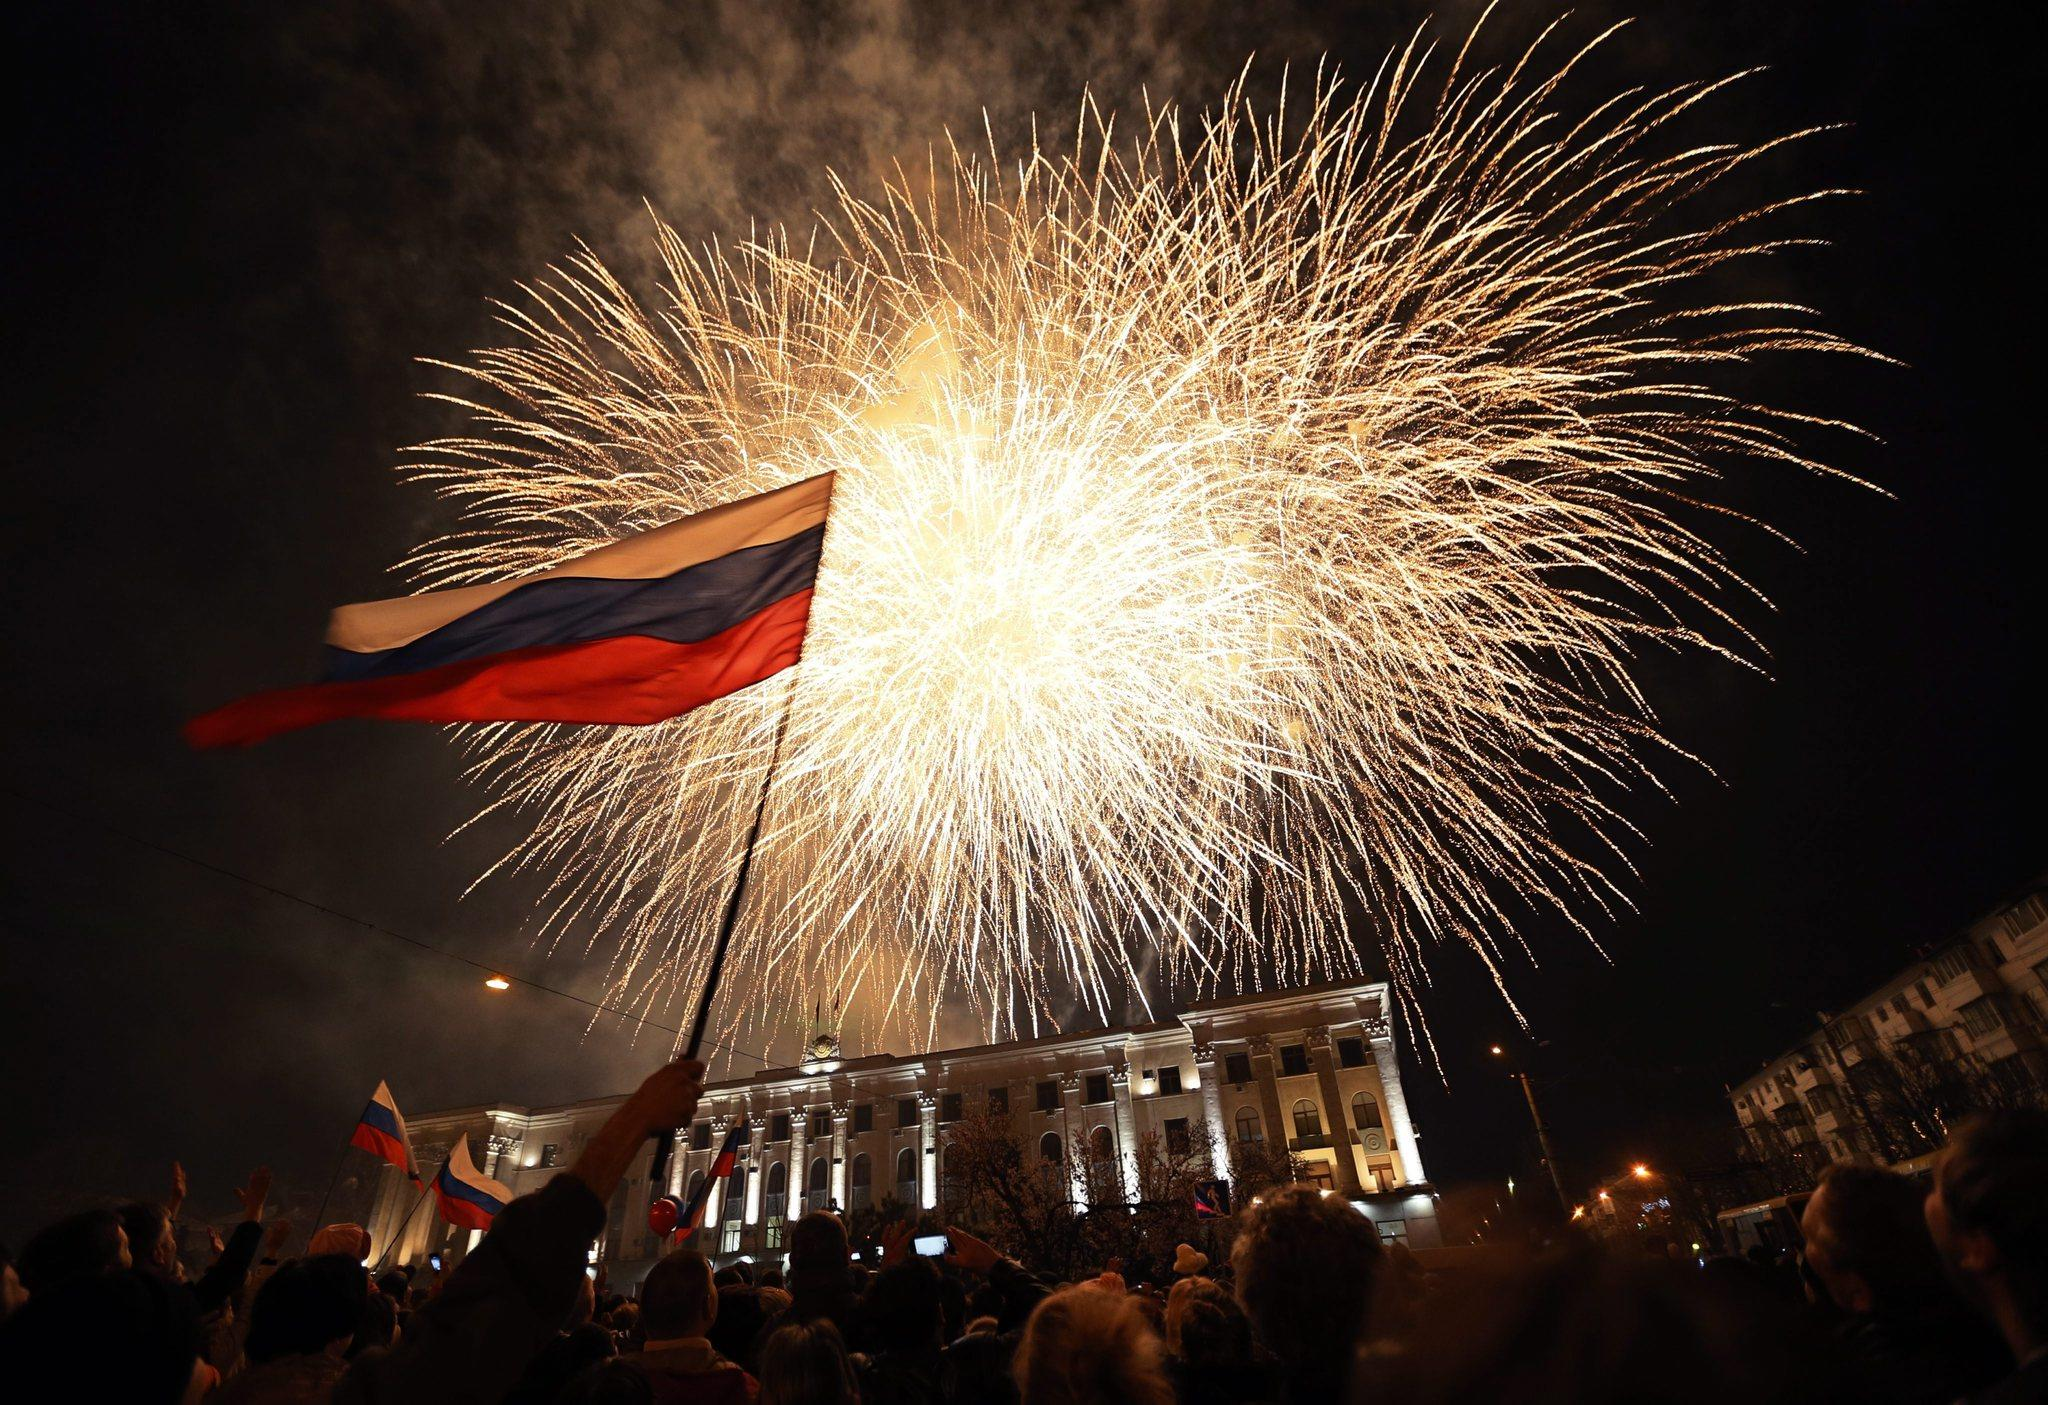 People wave Russian flags as fireworks burst above the central square in Simferopol, the capital of Crimea.